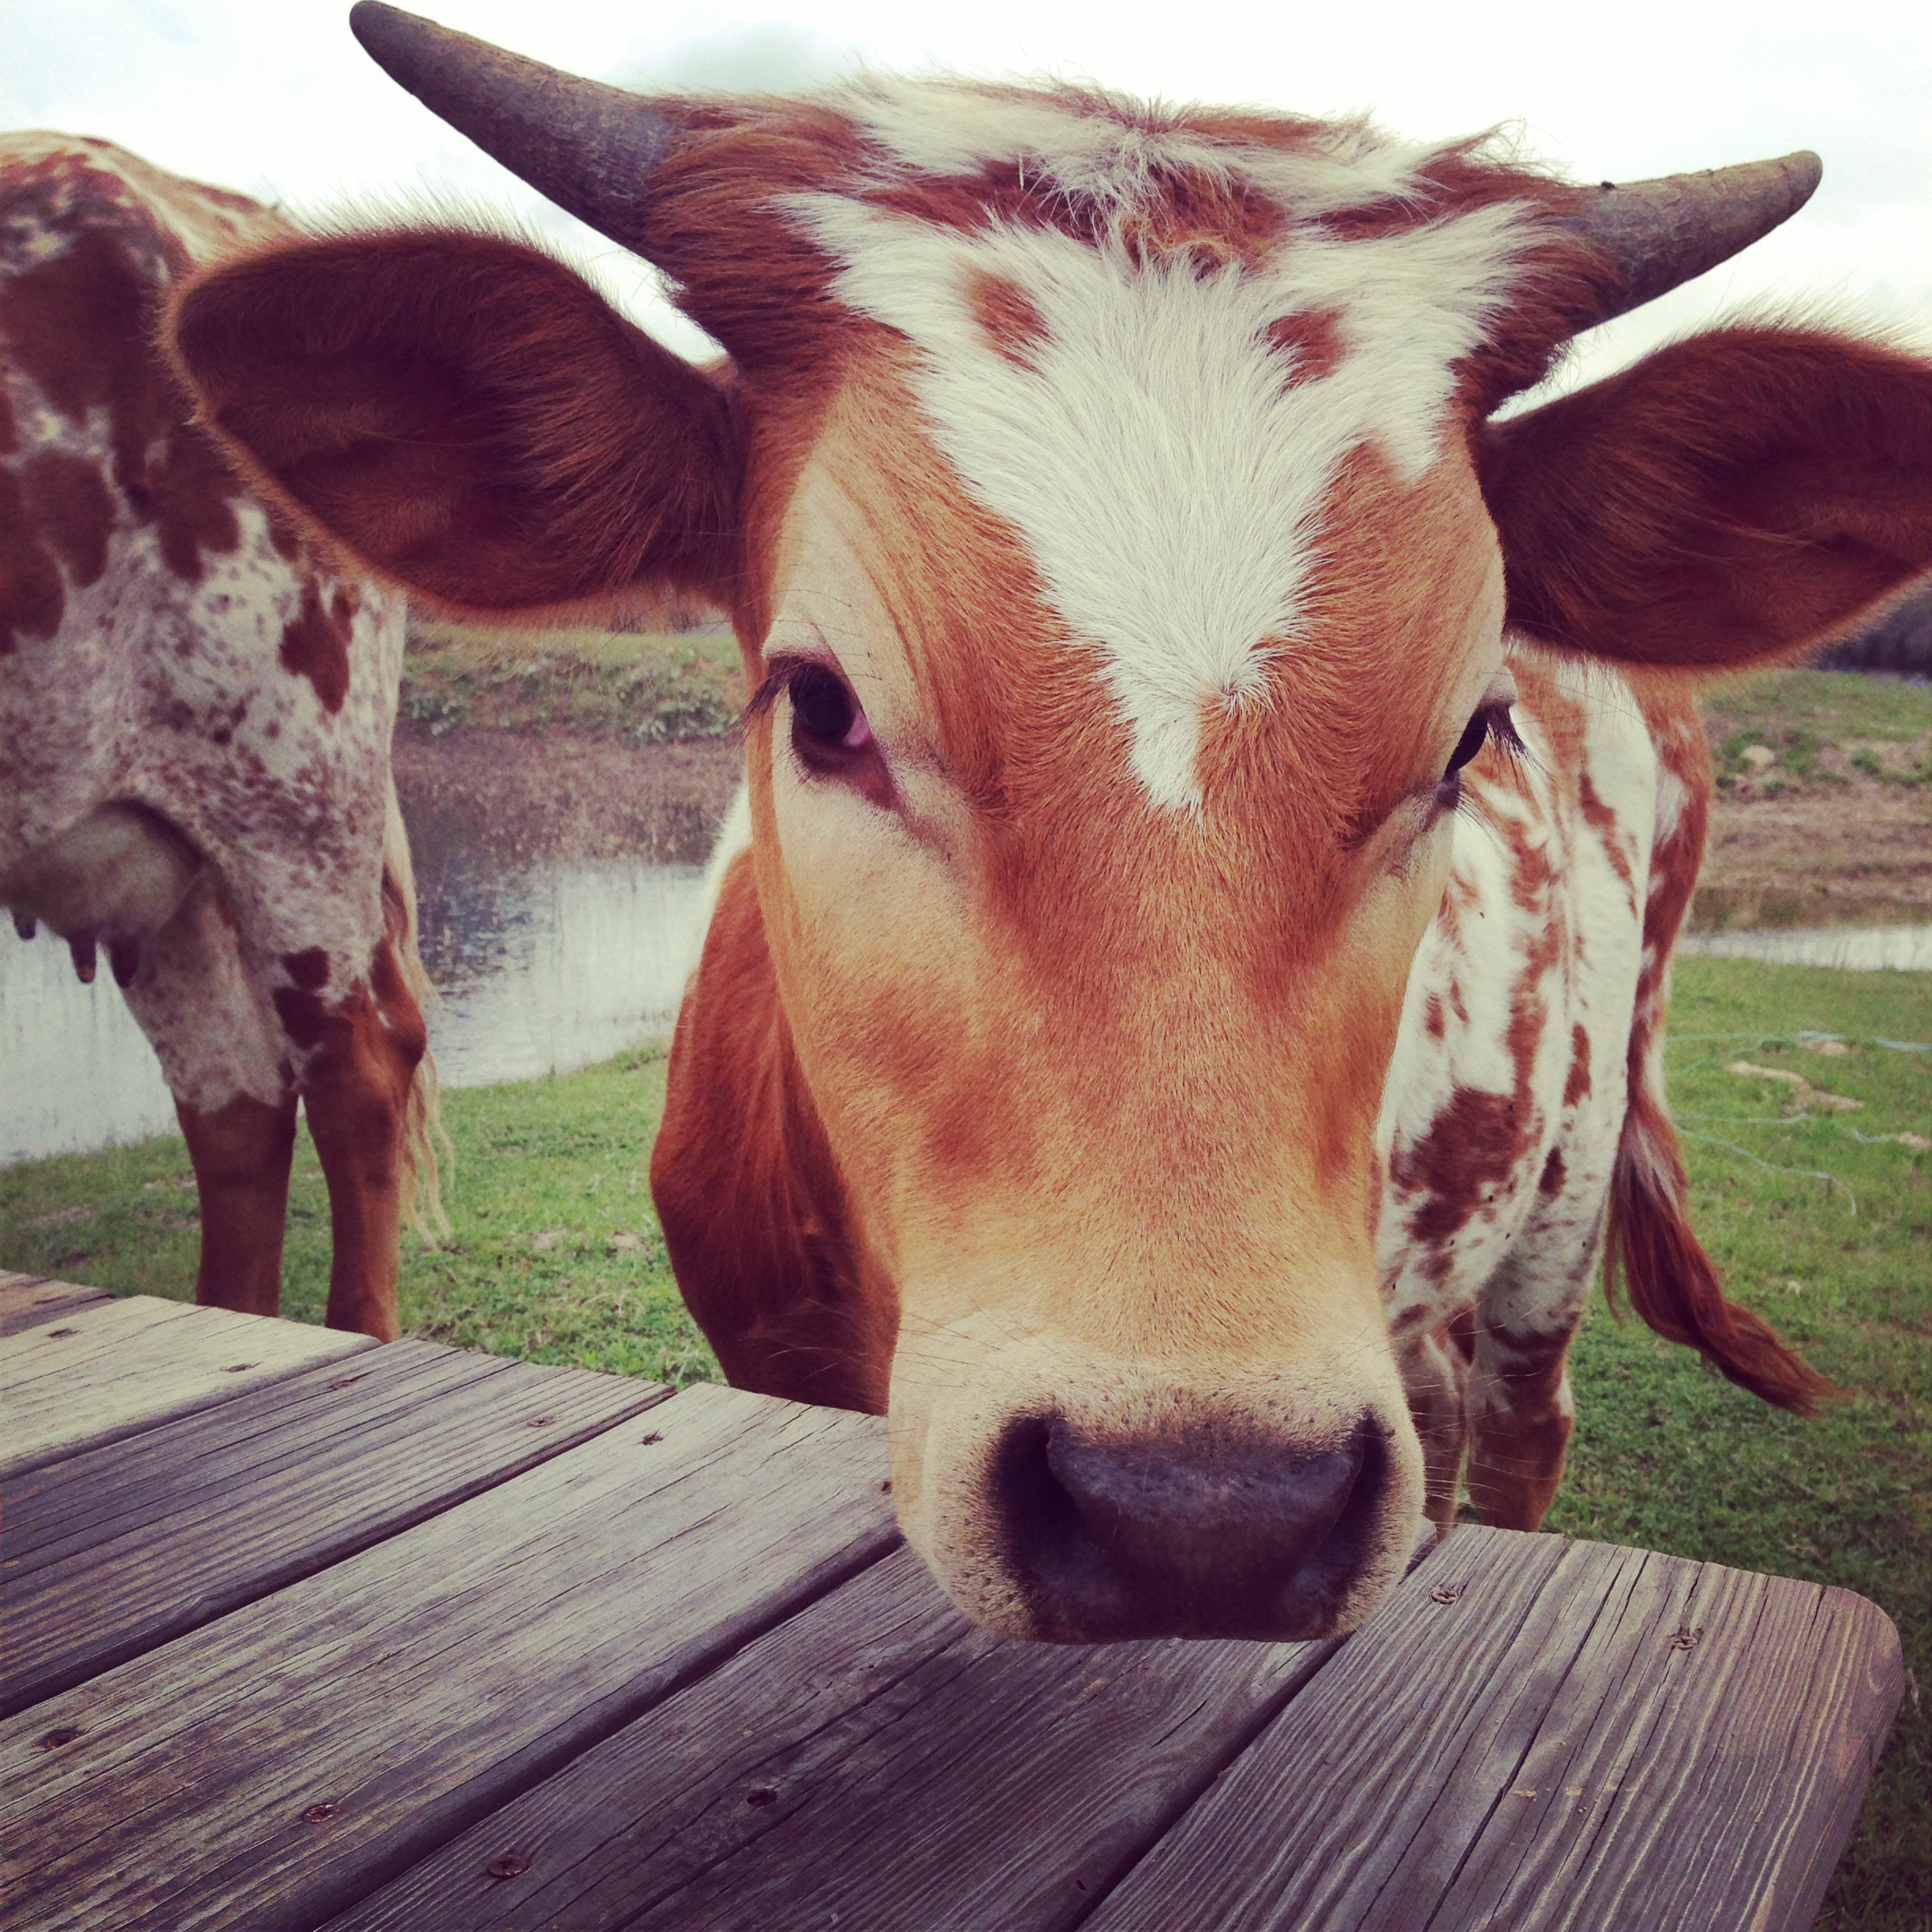 Yes. We were thisclose. This is a beautiful baby longhorn who would not let me whisper to her because she was hungry and just wanted some nomz.